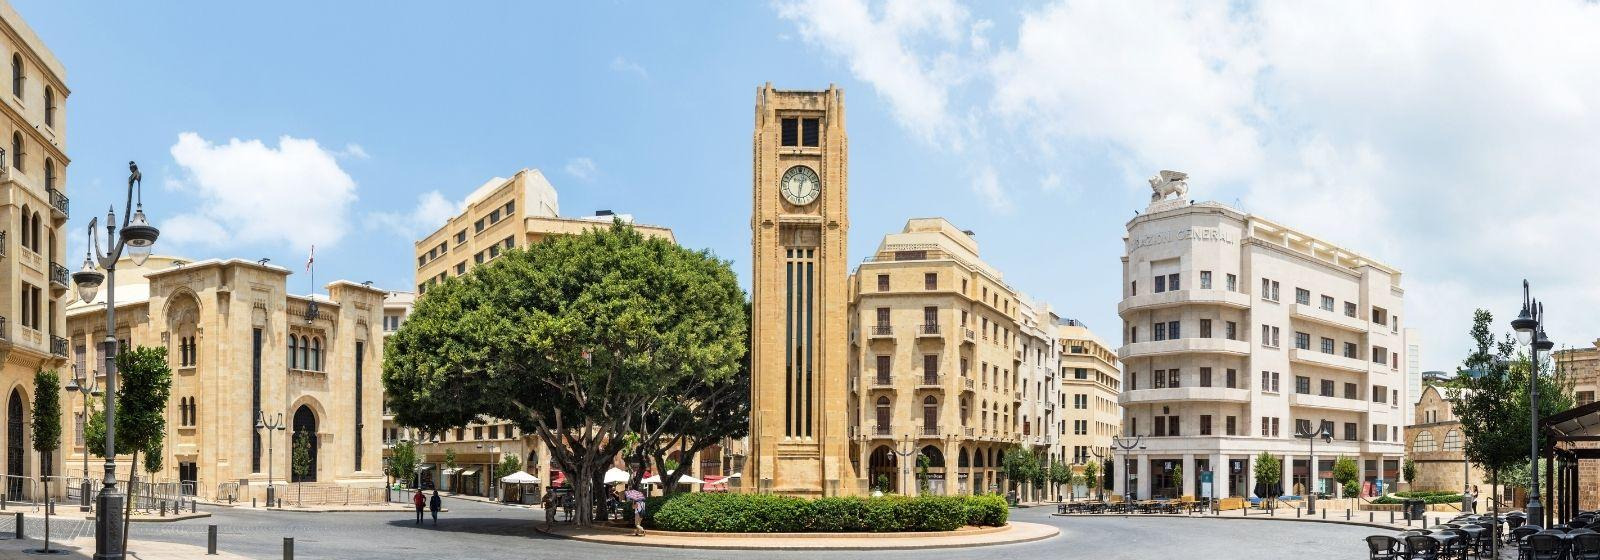 Things to do in Beirut